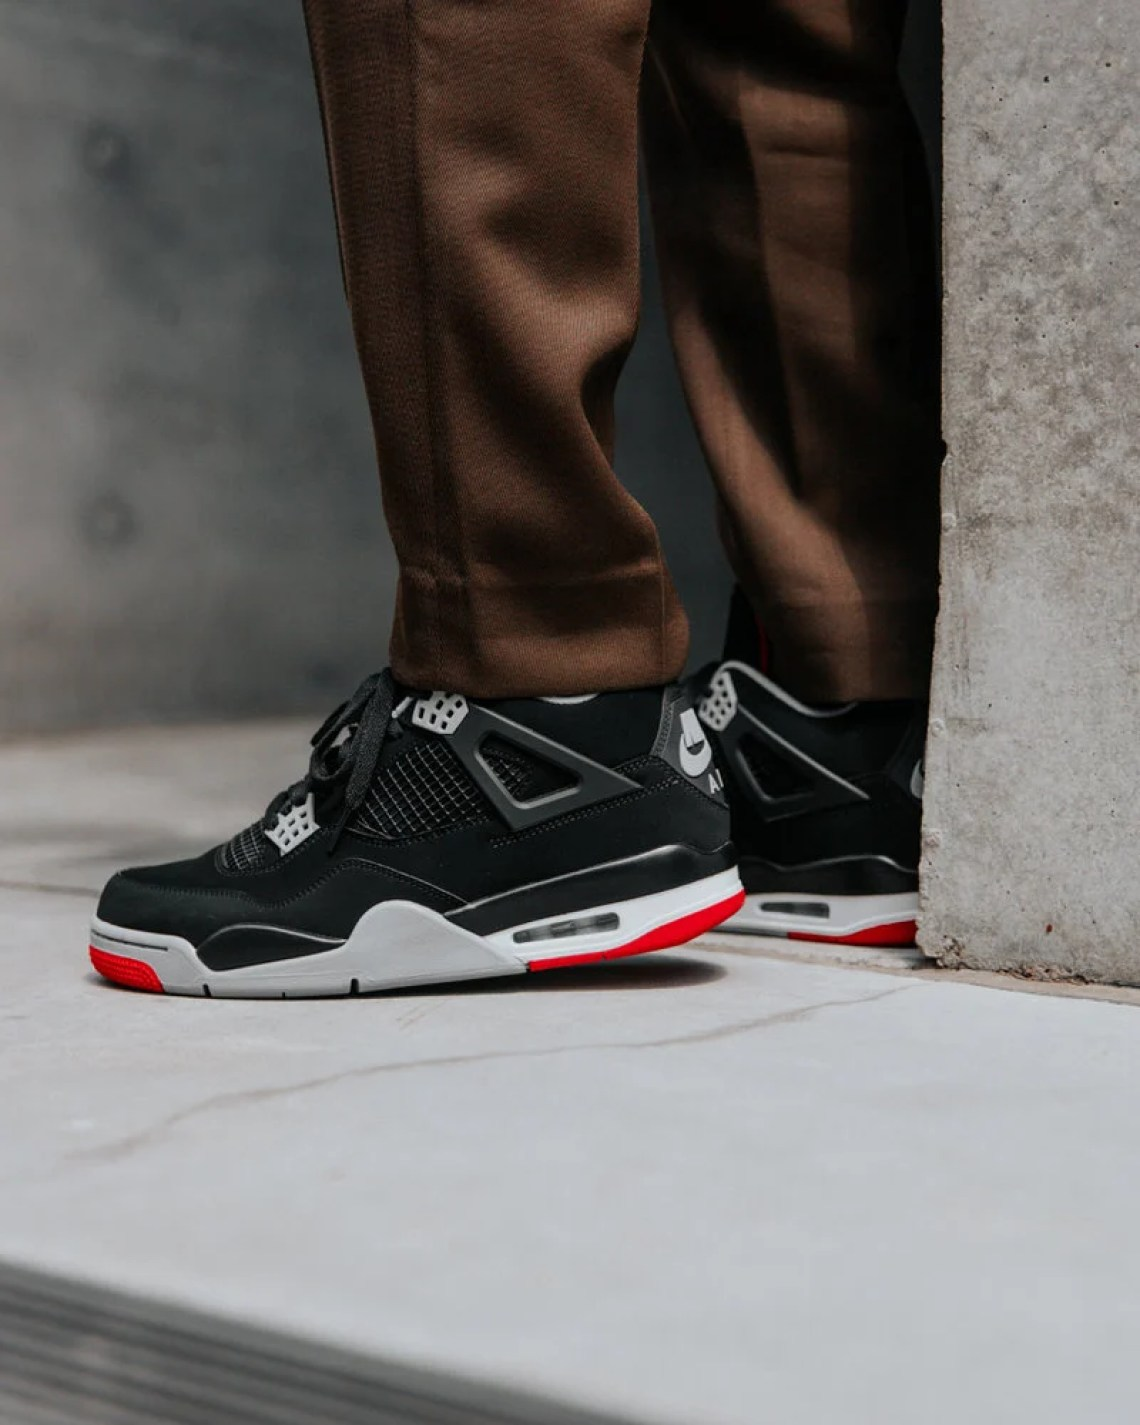 new arrival cd23c 1c2f2 Check out the images below for an on-foot look at the Jordan 4 Black Red  releasing on May 4th.